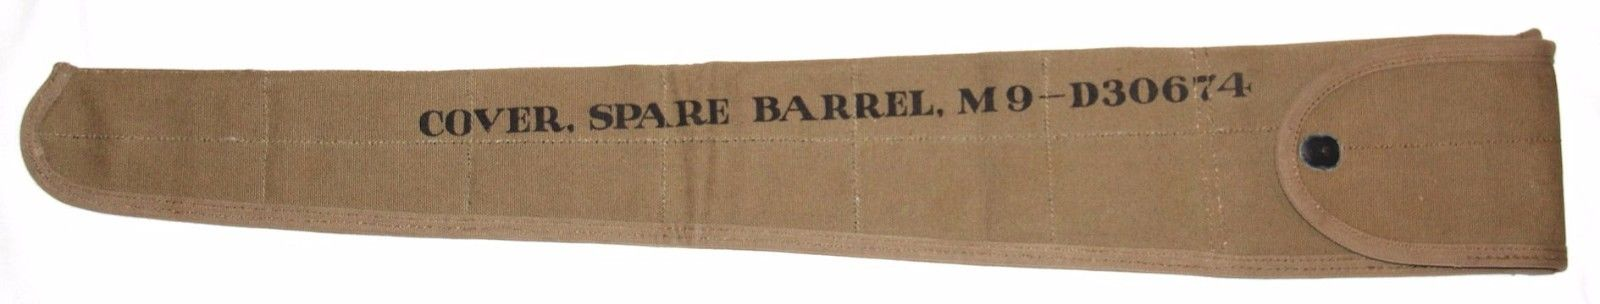 UNISSUED, EARLY WWII 1942 DATED M9 SPARE MG BARREL COVER W/ LEATHER LINING